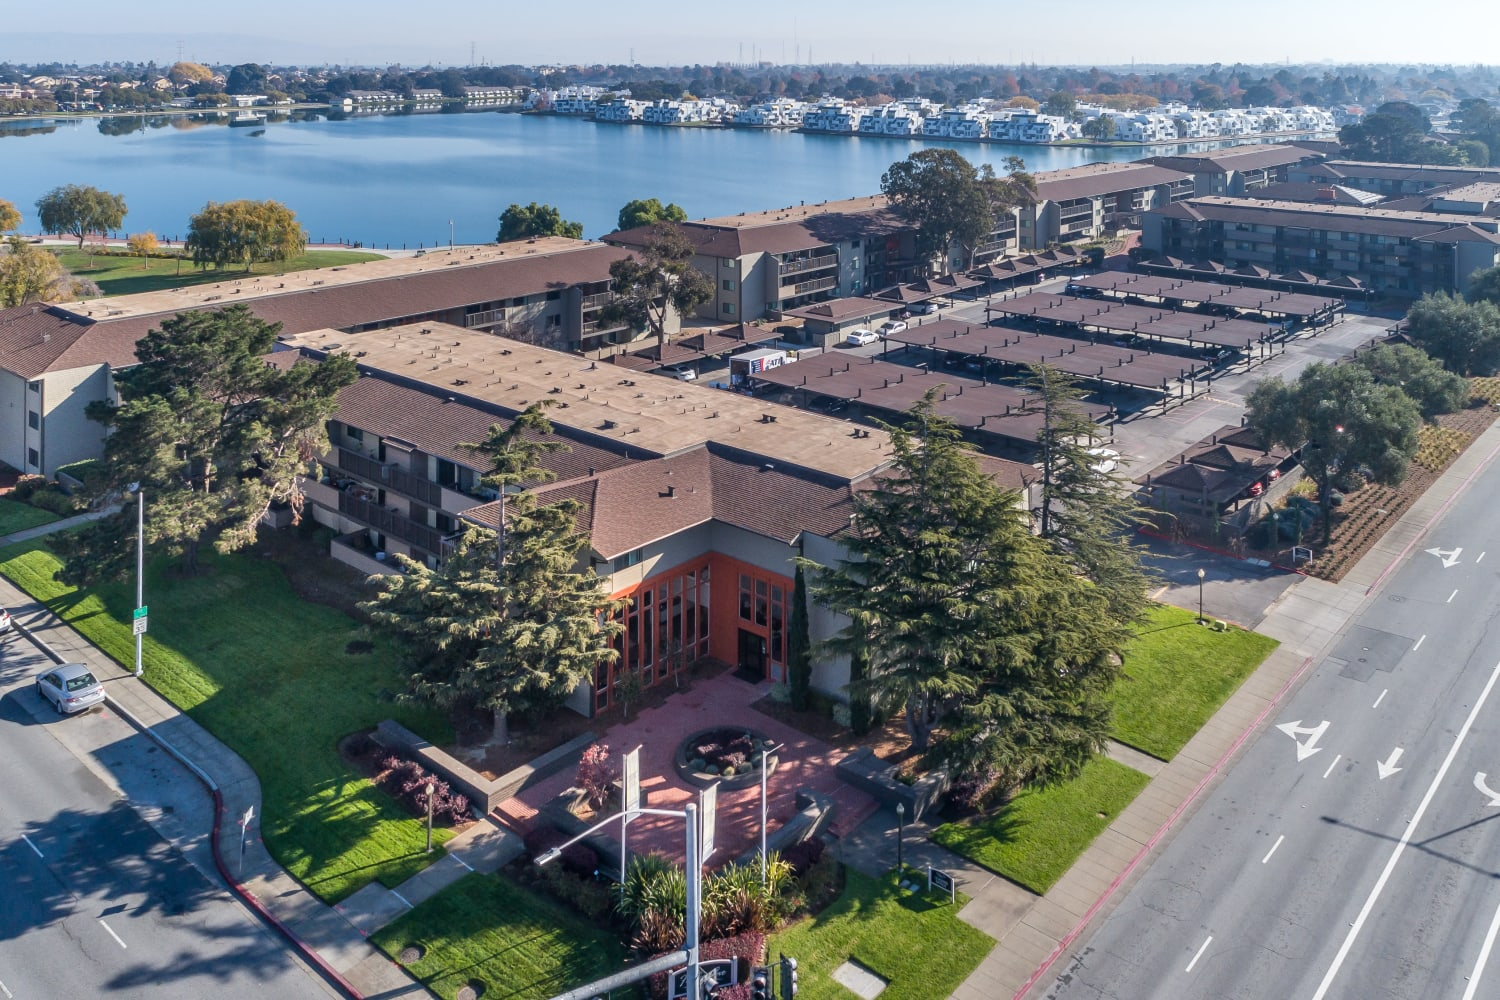 Harbor Cove Apartments in Foster City, California in centrally located for an easy commute